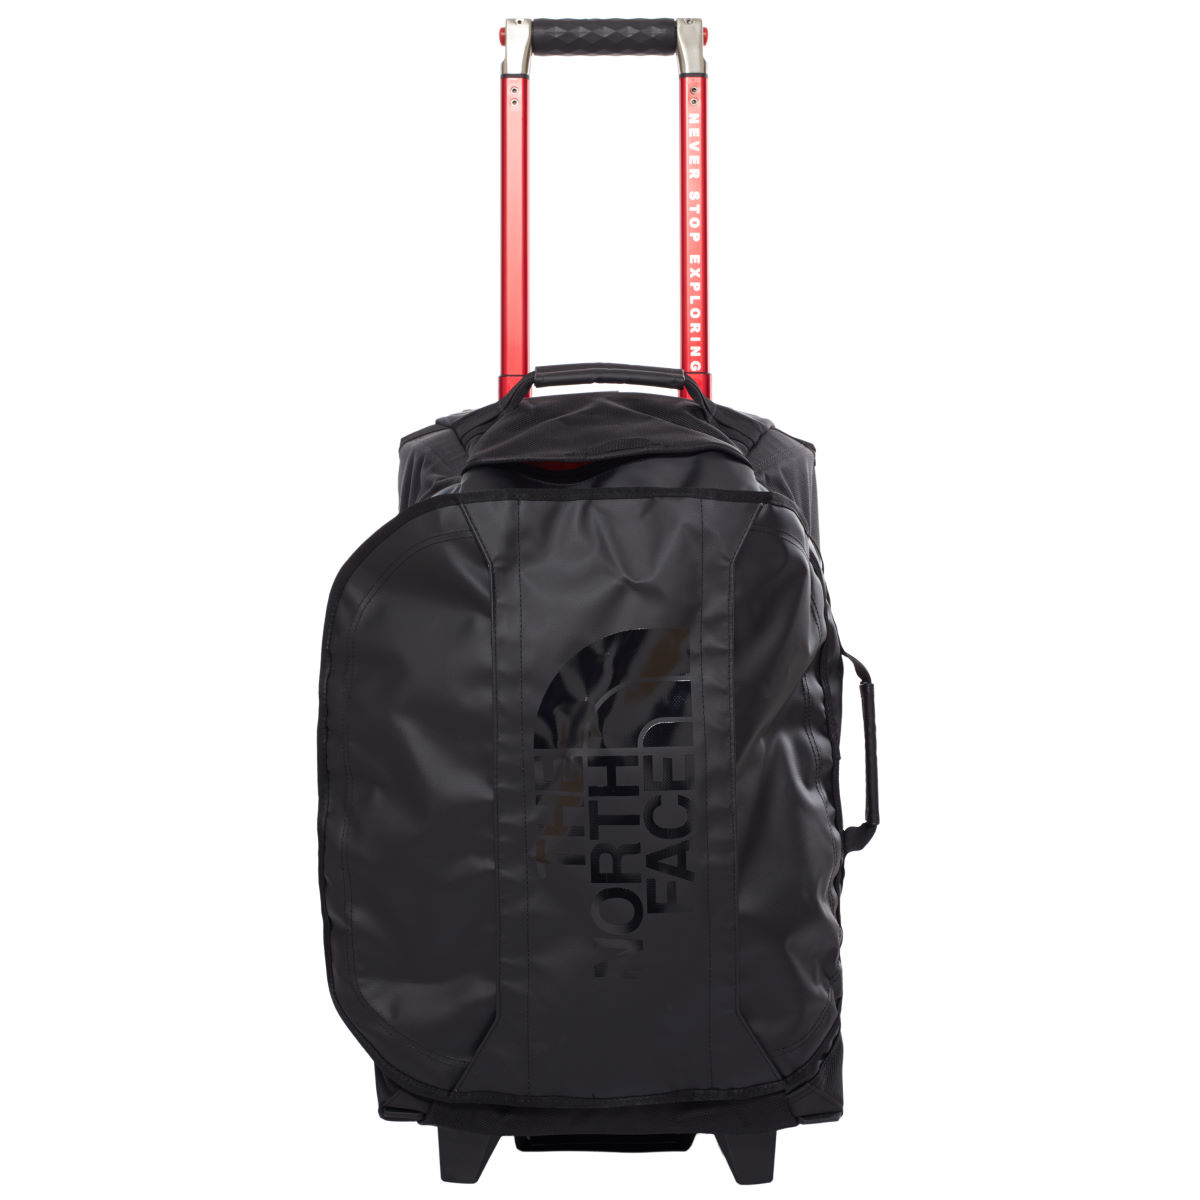 Valise The North Face Rolling Thunder 19 - One Size Black